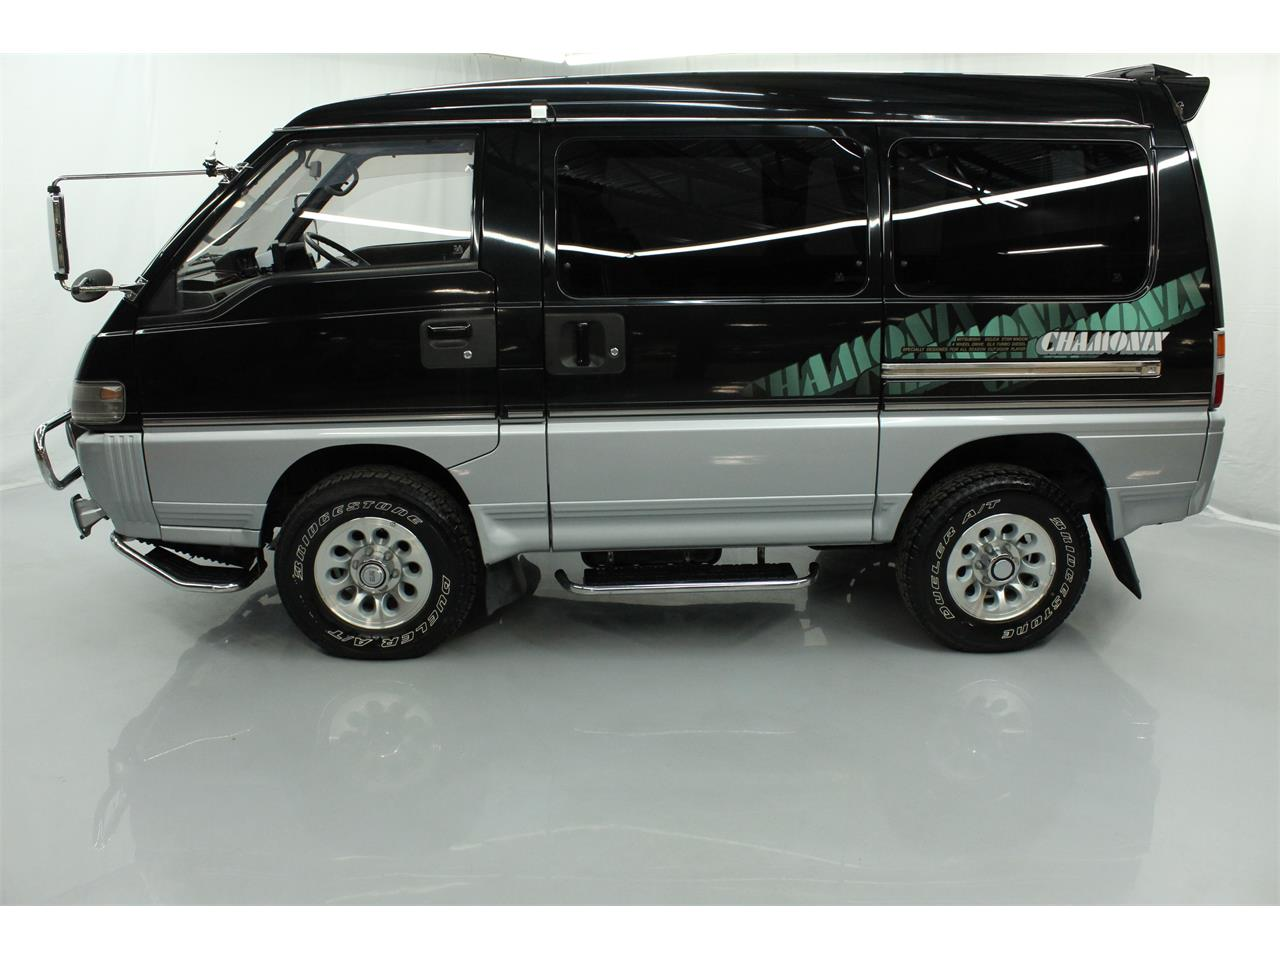 1992 Mitsubishi Delica for sale in Christiansburg, VA – photo 6